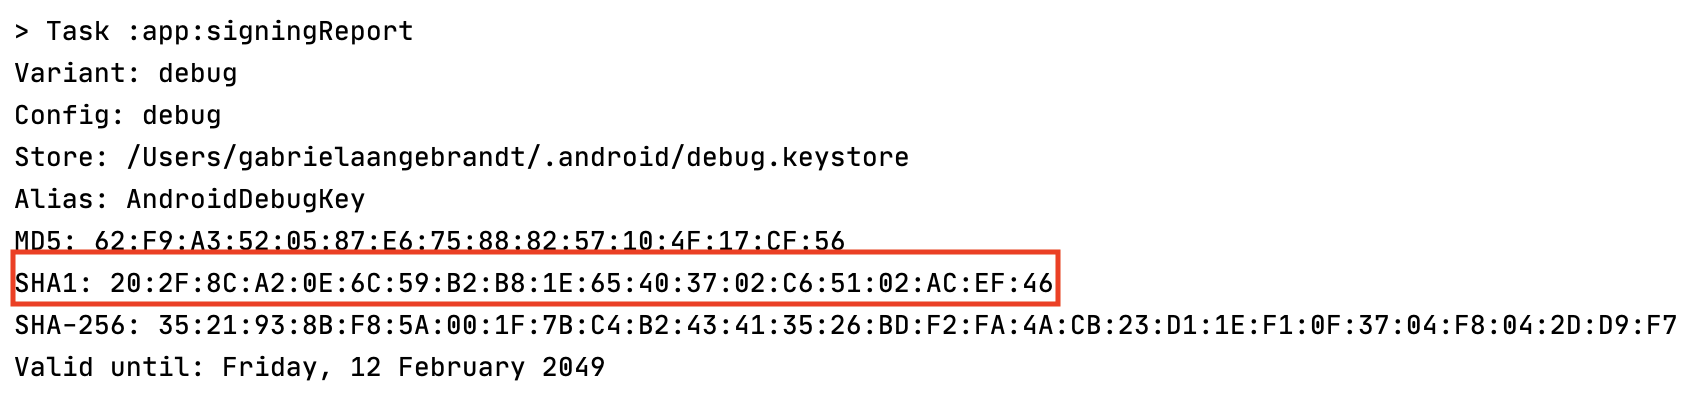 Signing Report with SHA1 key.